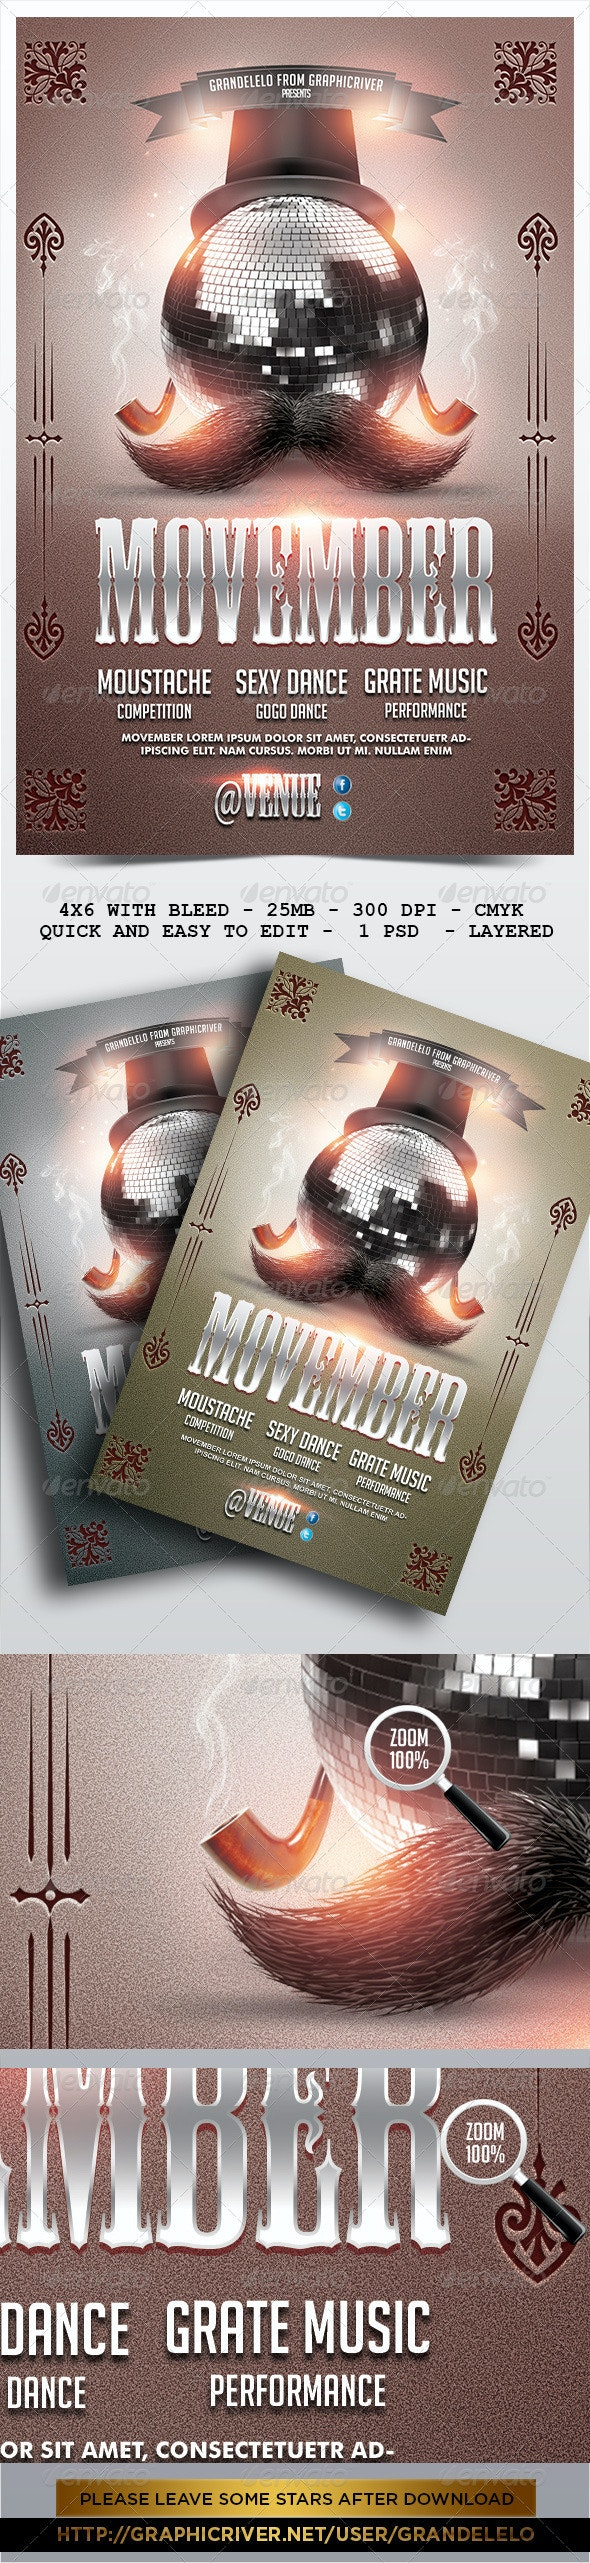 Movember Flyer Template 2.0 - Holidays Events